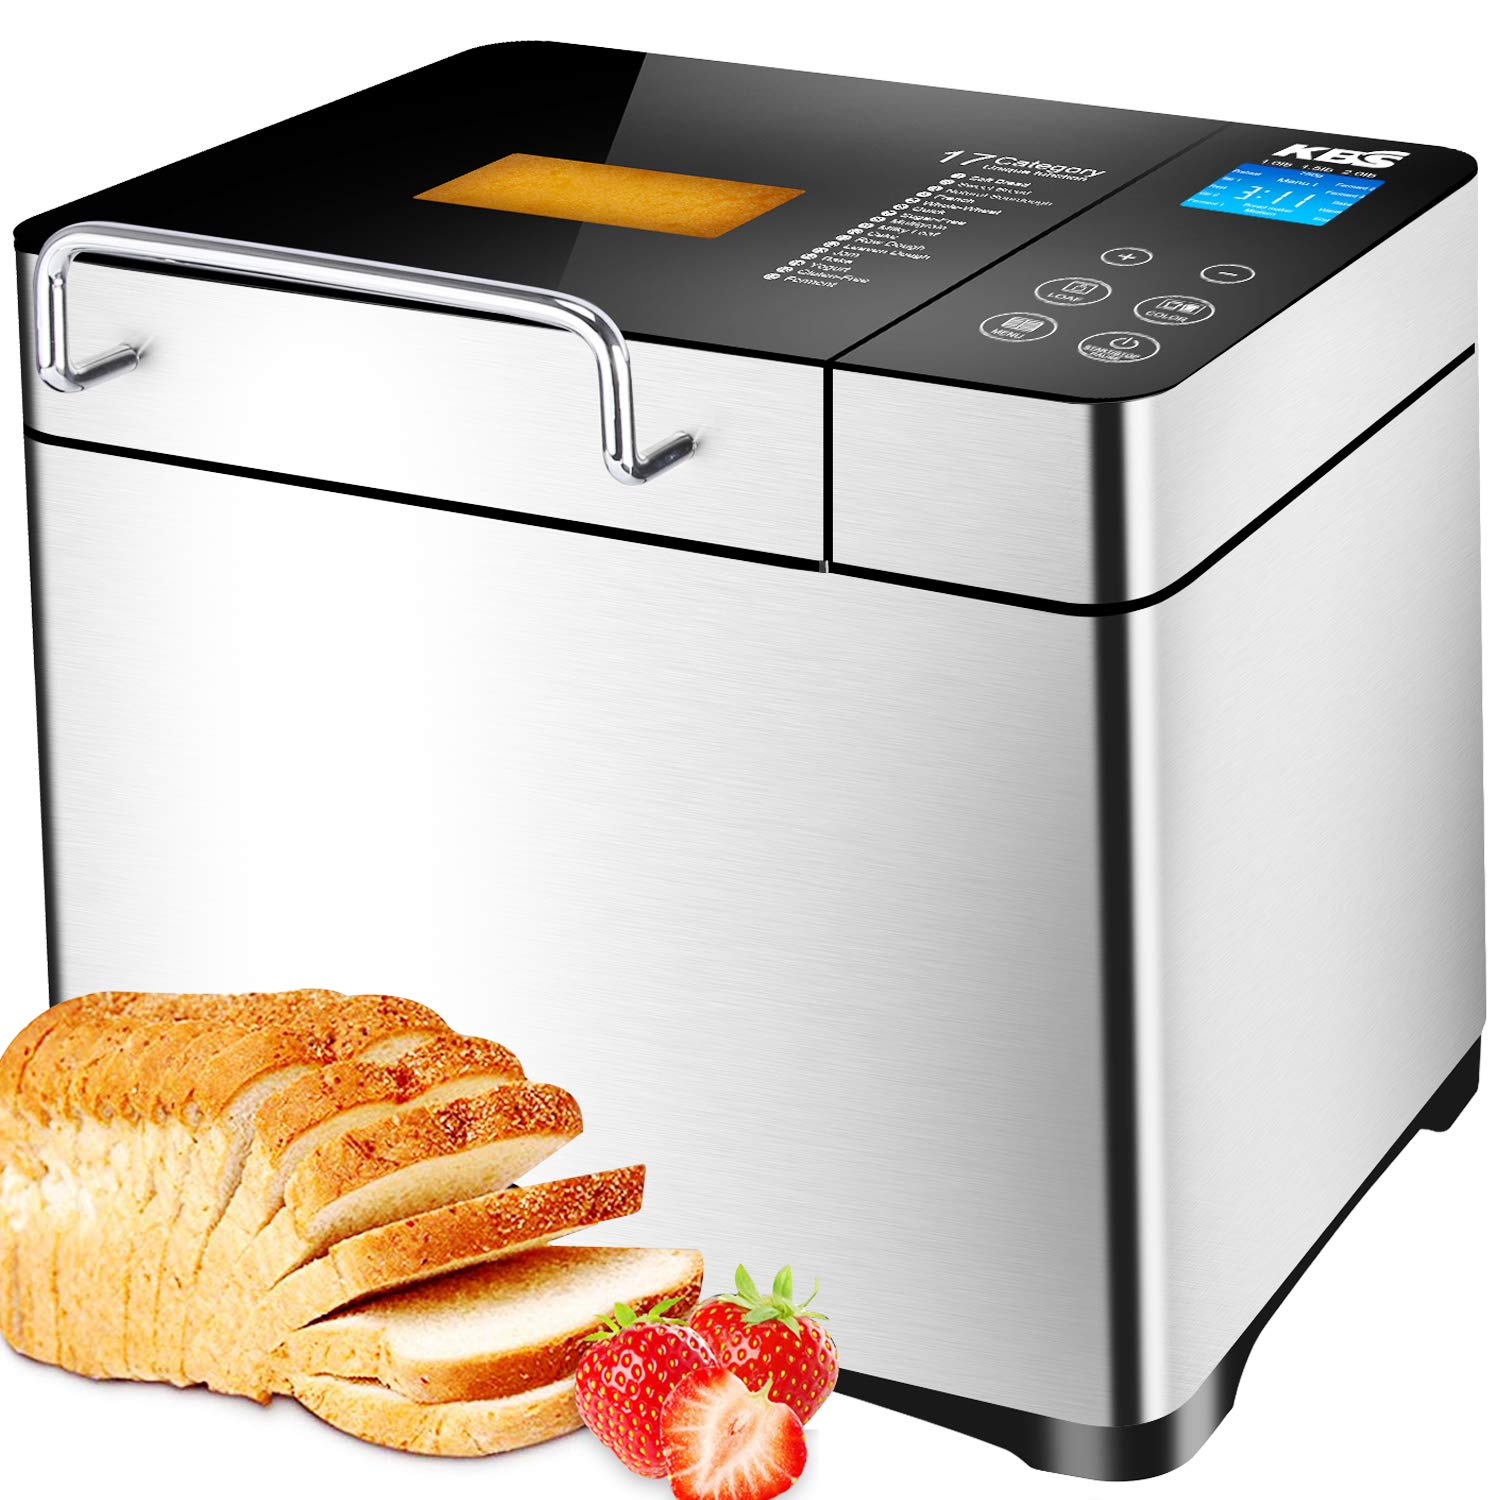 KBS Bread Machine, Automatic 2LB Bread Maker with Nuts Dispenser, LCD Display Touch Control, 3 Crust Colors 17 Menus, 1 Hour Keep Warm 15 Hours Delay Time, Gluten Free Whole Wheat, Stainless Steel by KBS